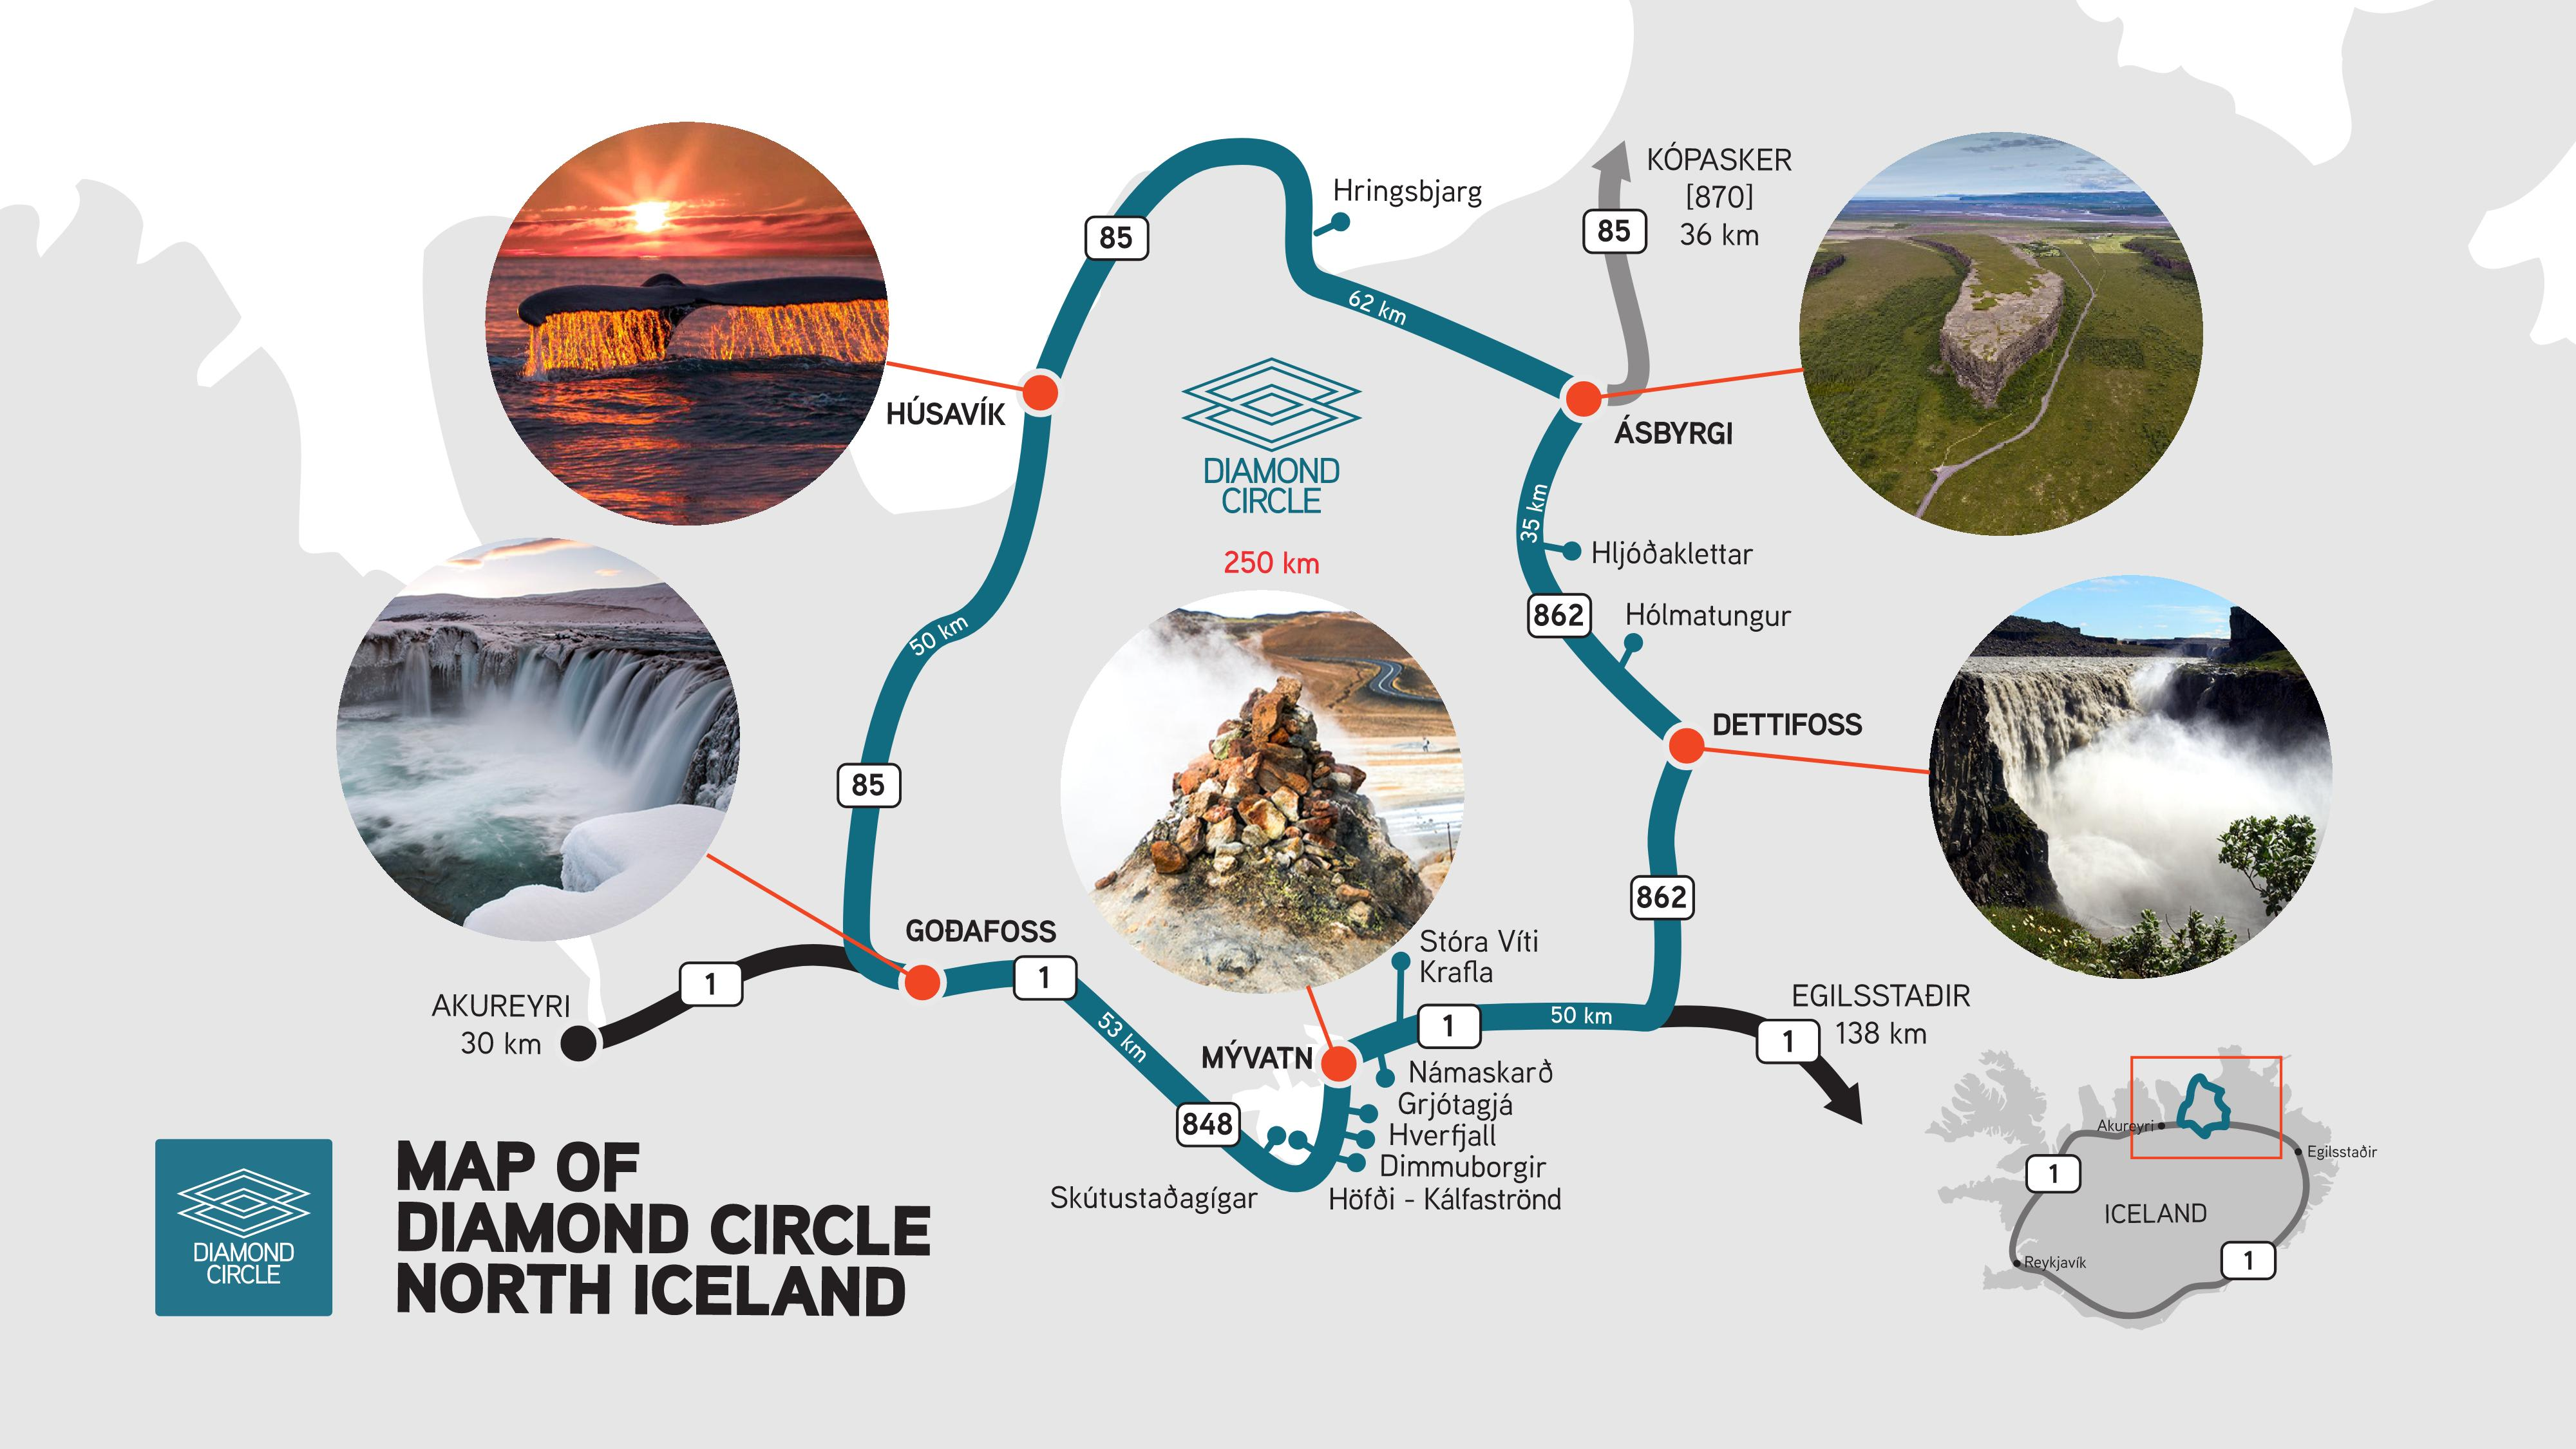 a map of the Diamond Circle showing a circular route which takes travelers around the North of Iceland